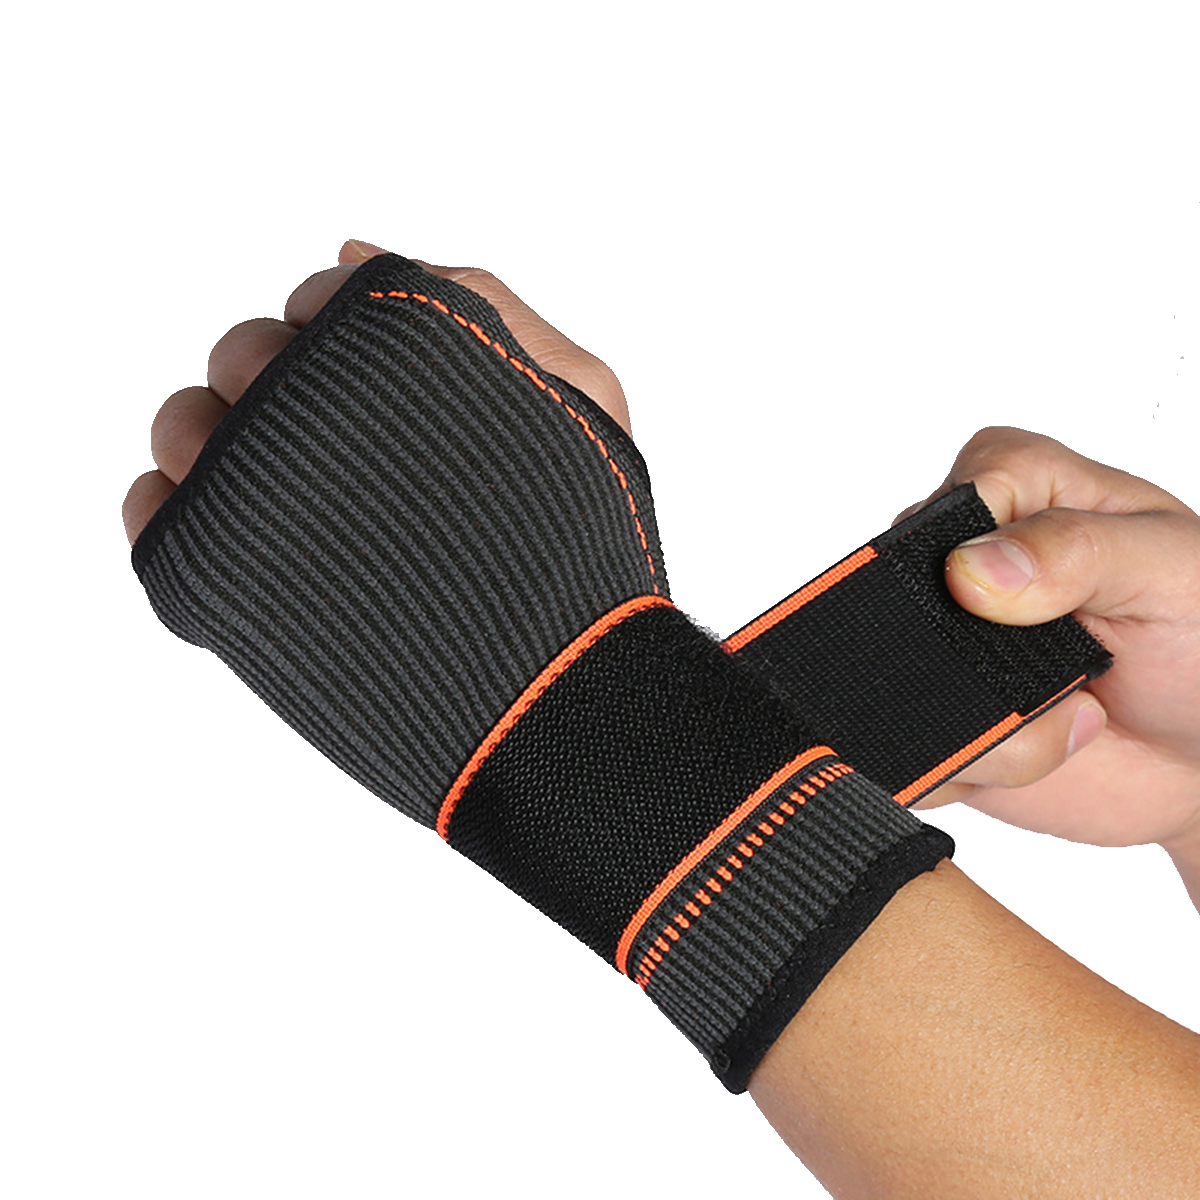 1Pc Adjustable Wrist Support Camping Sports Hand Palm Brace Strap Wraps Hand Prevent Sprains